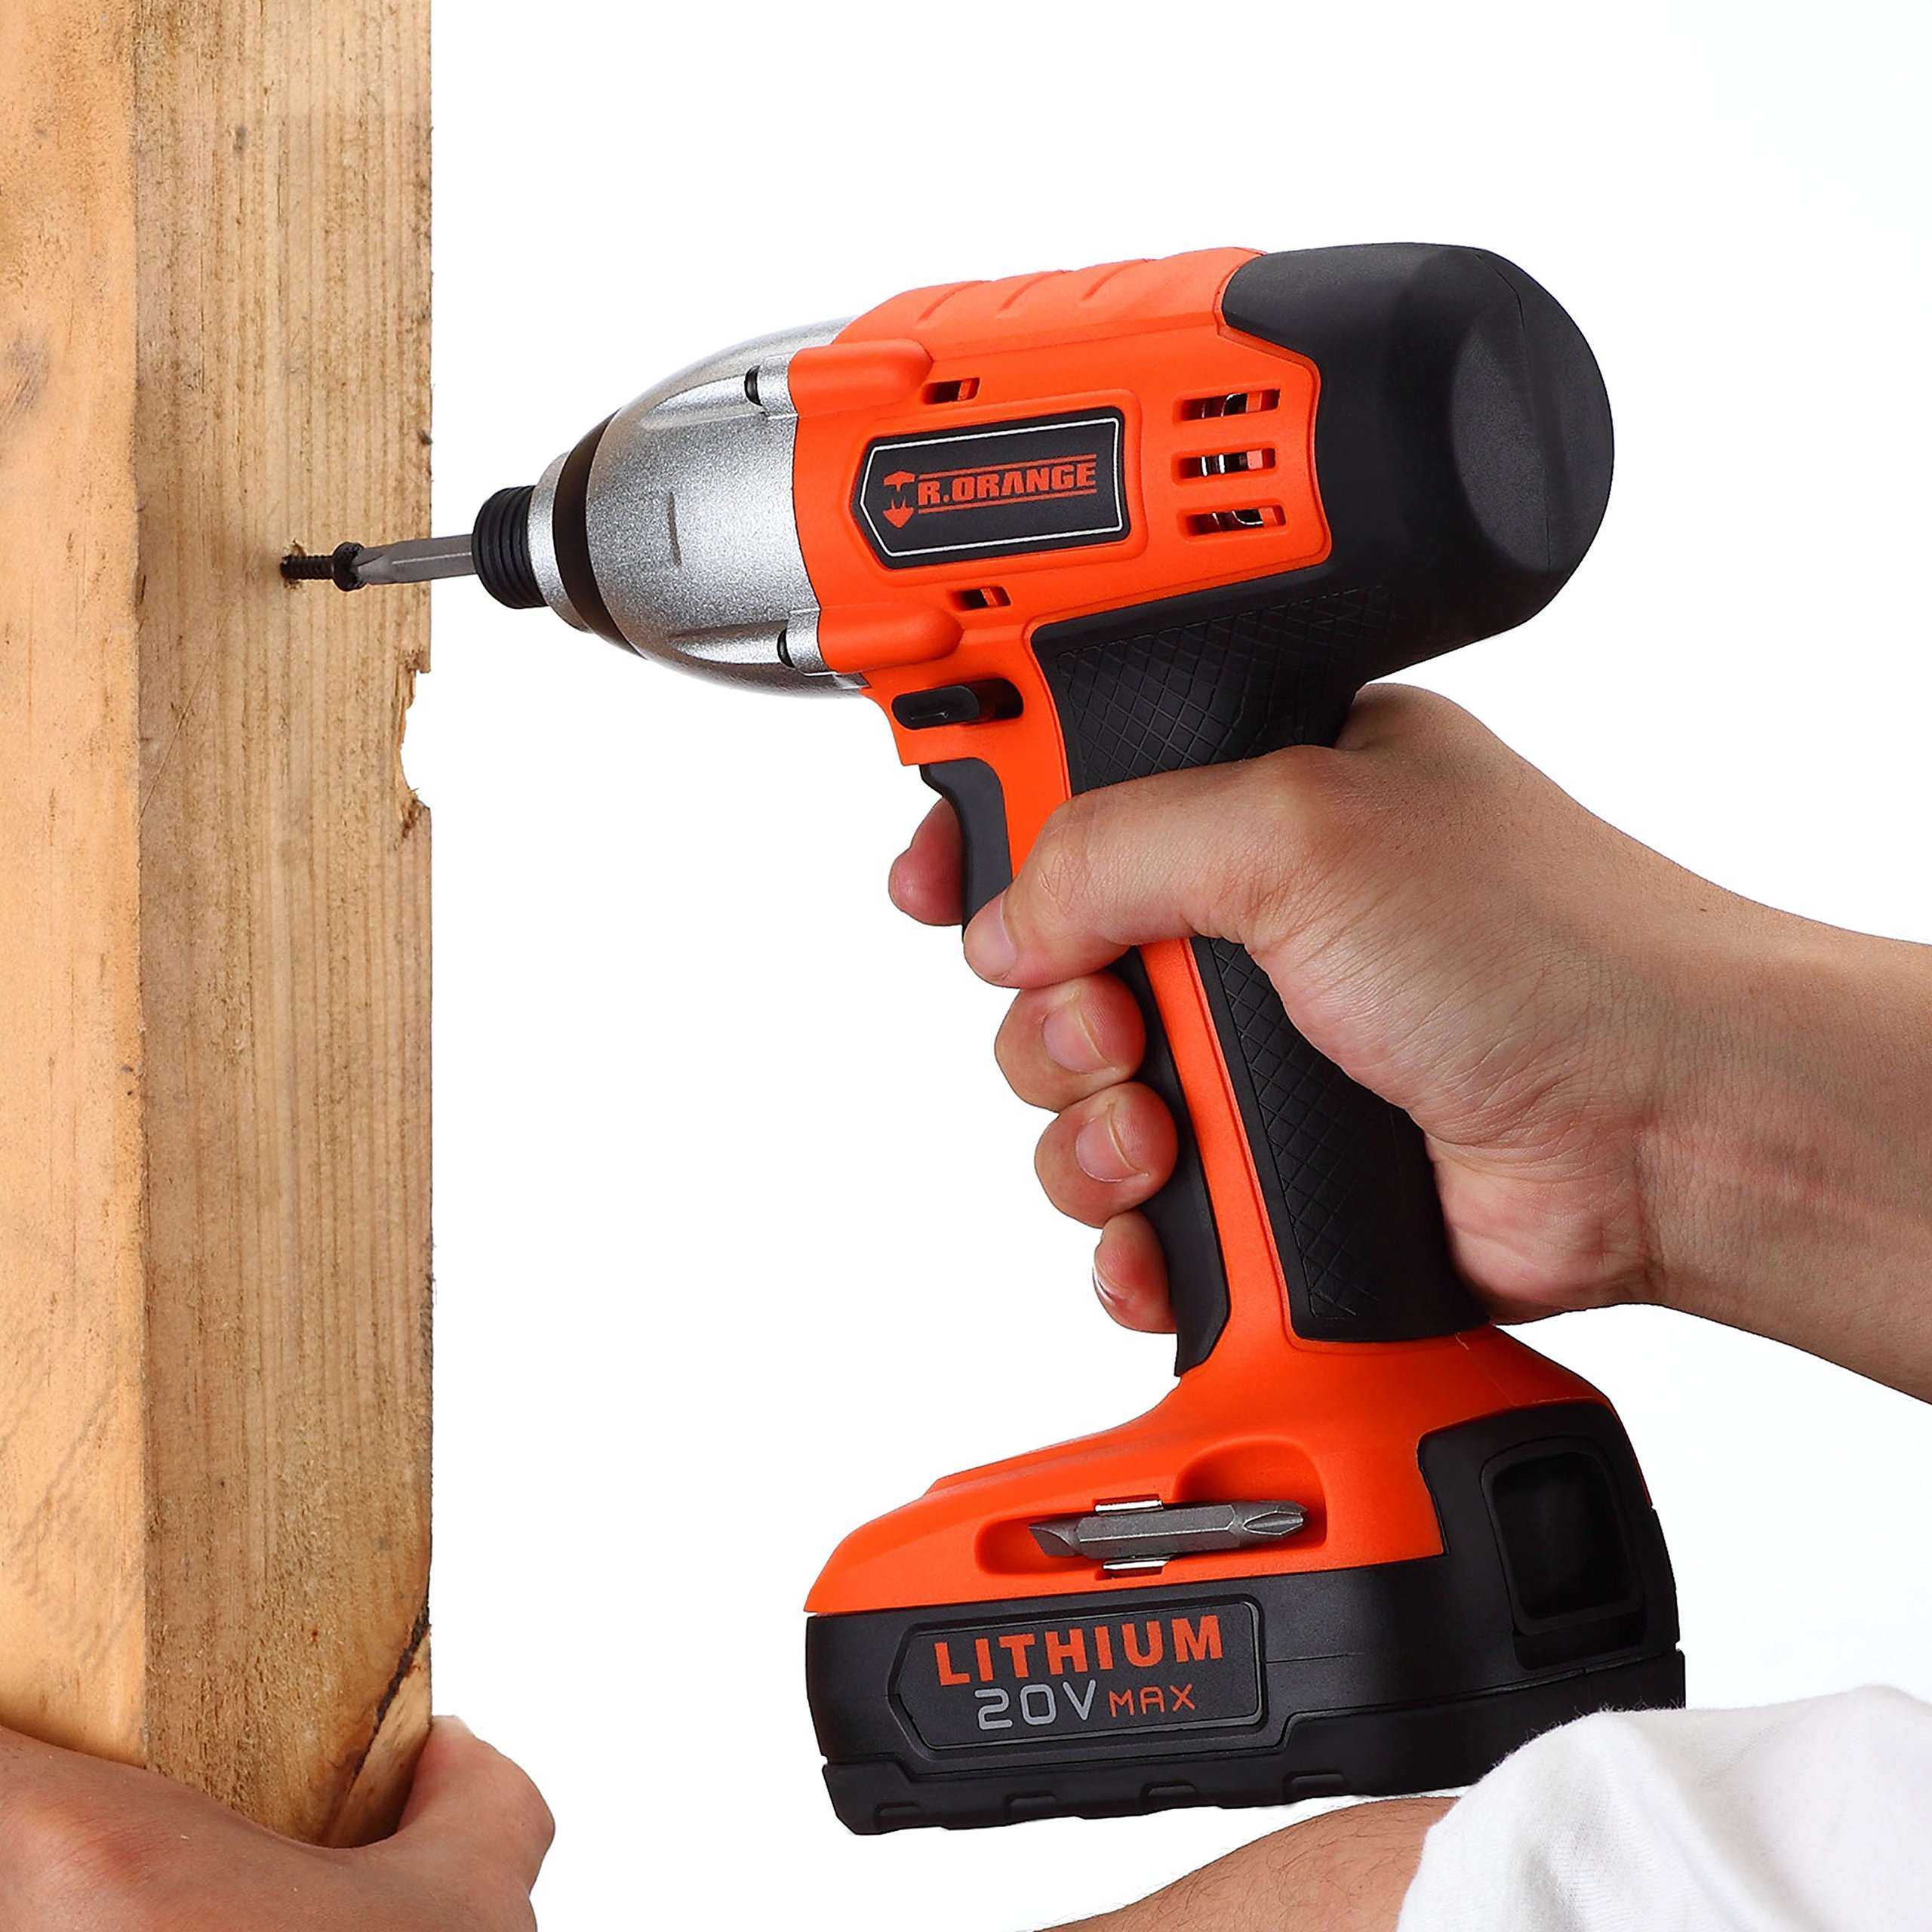 Mr.Orange 1/4 Inch 20V Lithium-Ion Cordless Impact Driver Kit with Quick Charger and Battery Includes Durable Gloves 2 pcs socket driver bits and Soft Tool Bag by Mr.Orange (Image #7)